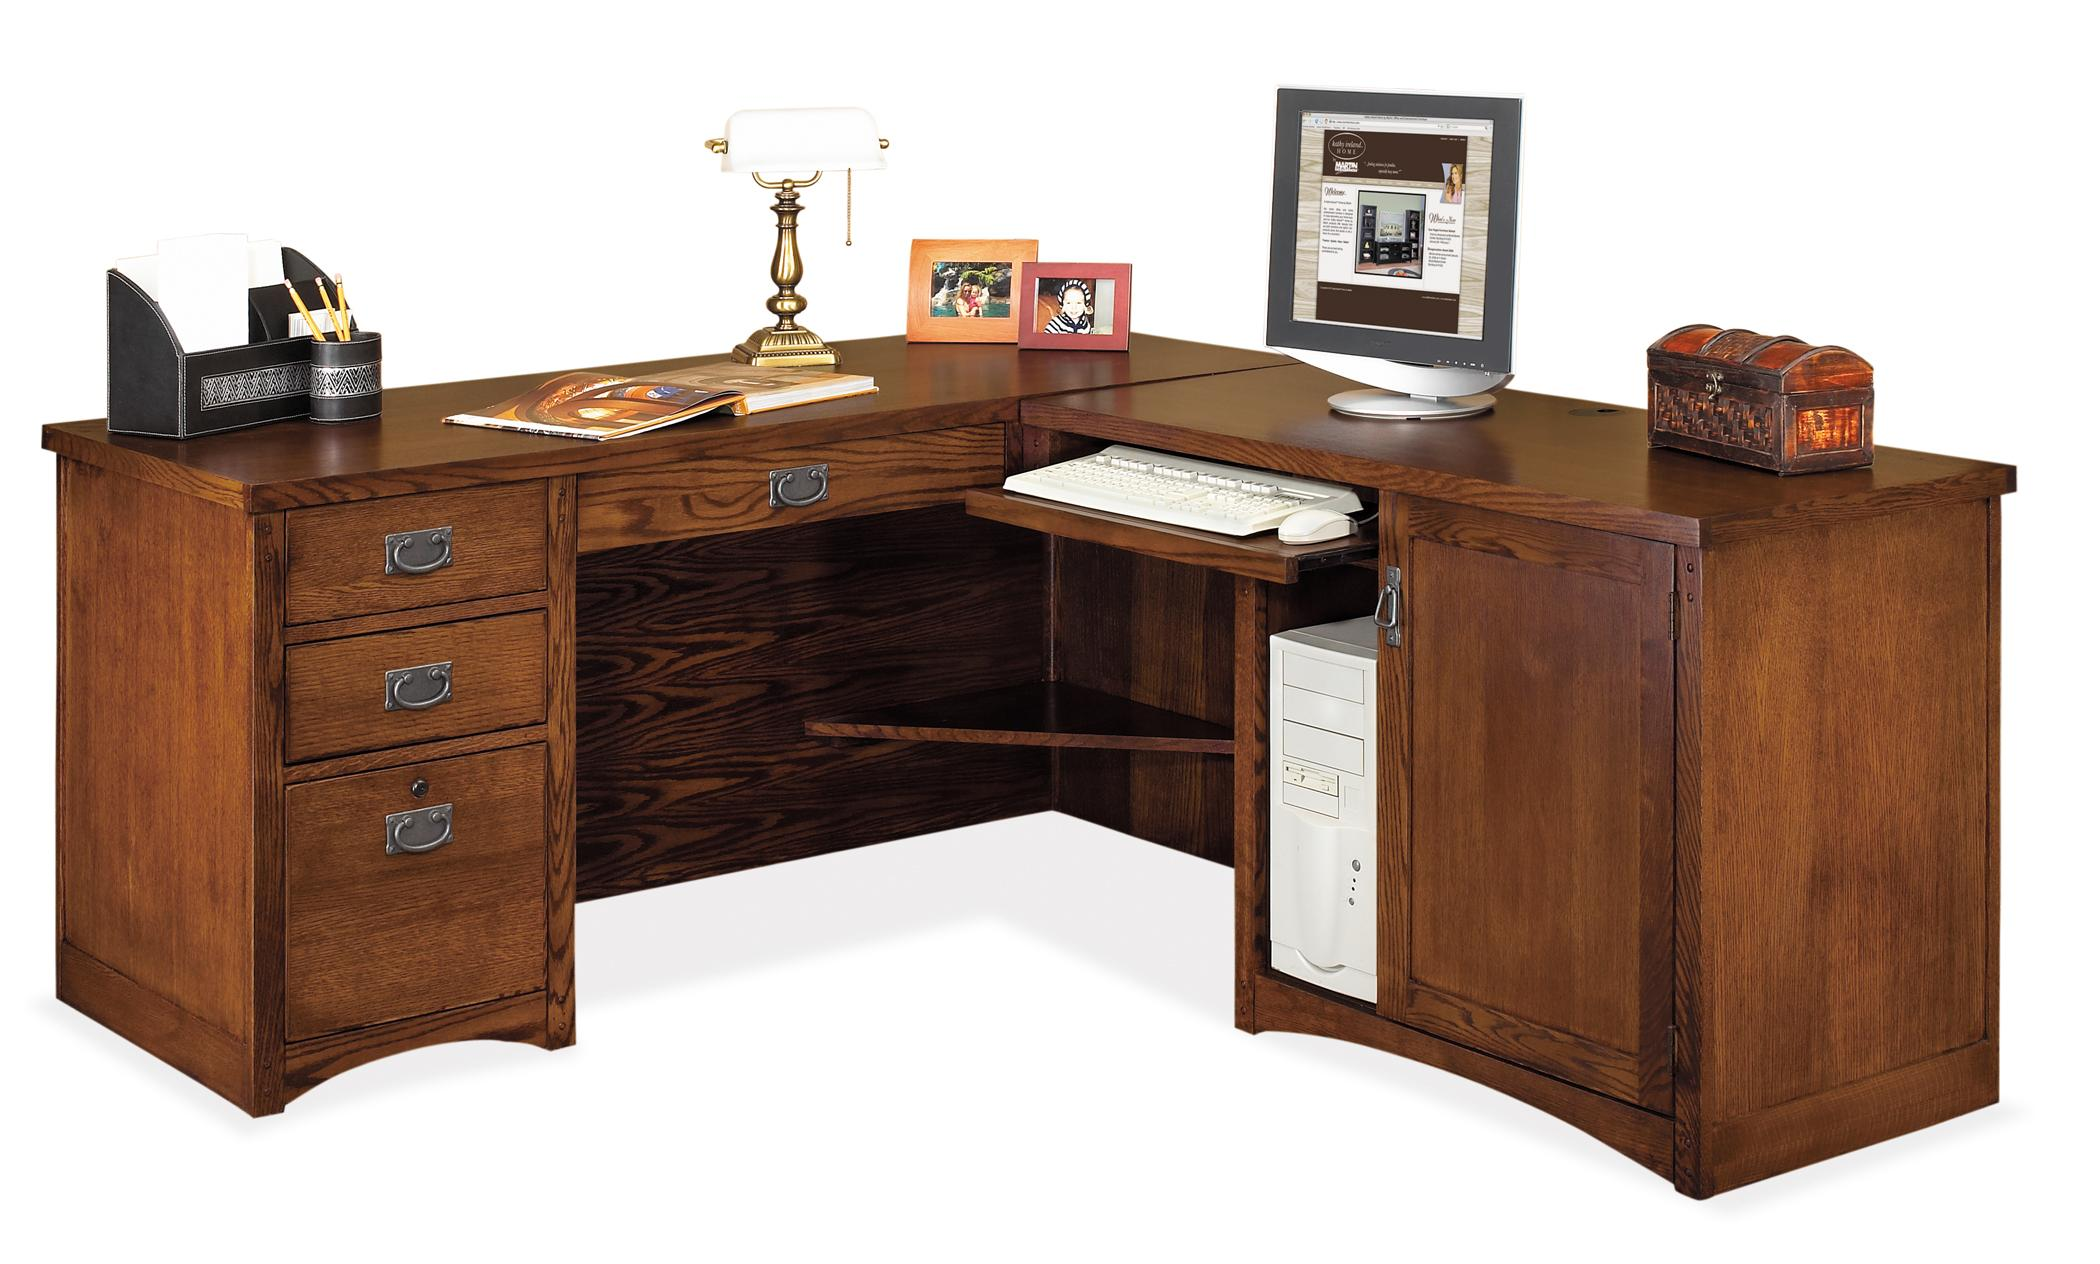 kathy ireland Home by Martin Mission Pasadena L-Shaped Executive Desk - Item Number: MP684R+684R-R